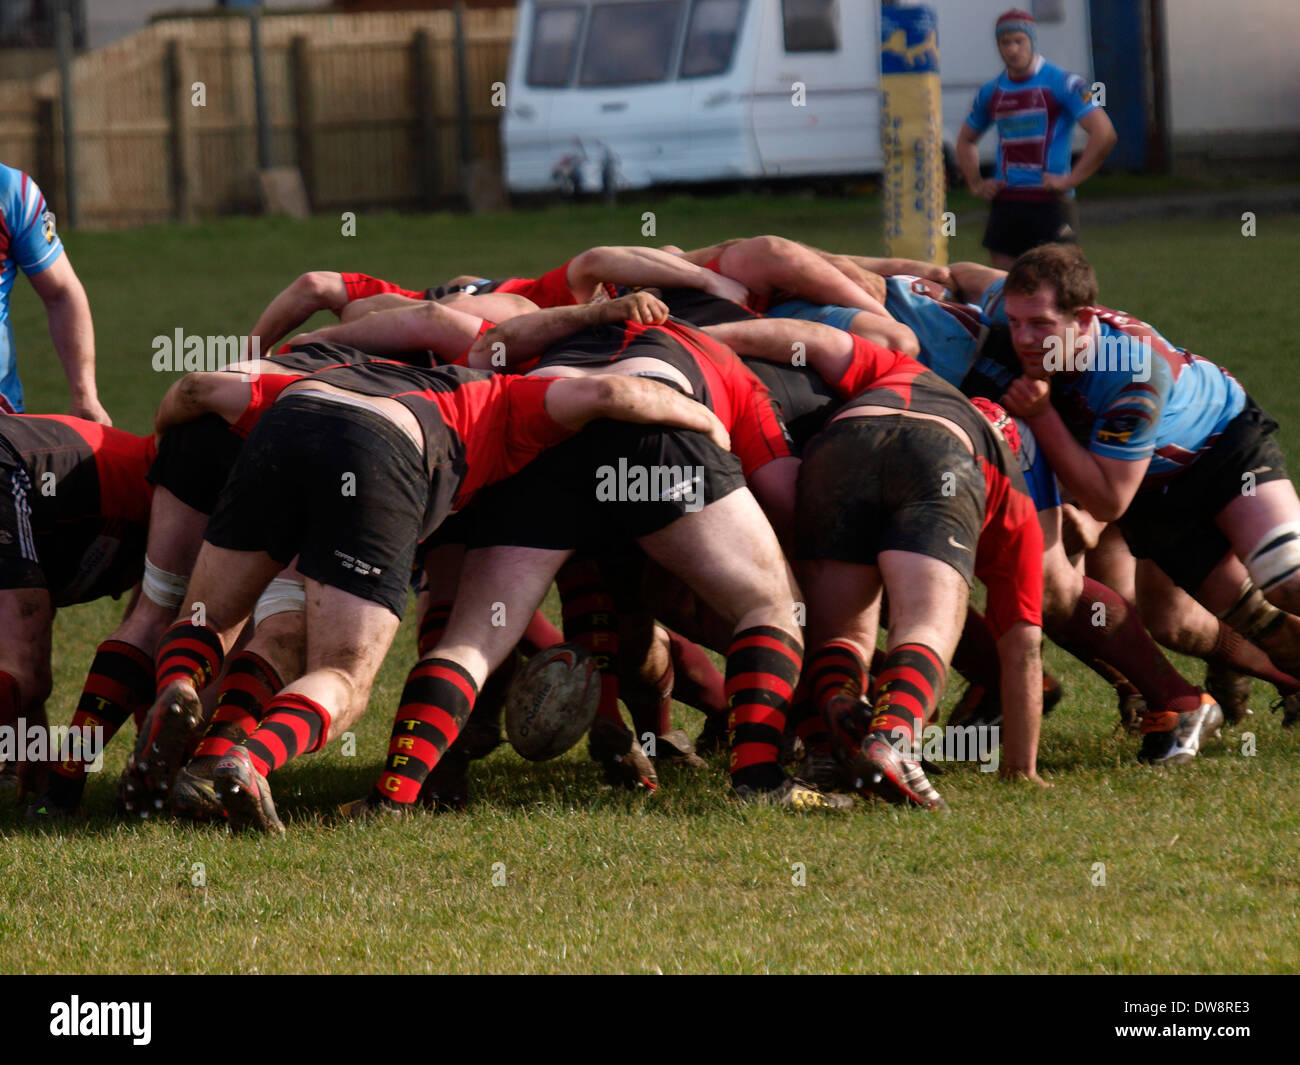 Scrum during amateur rugby match, Bude, Cornwall, UK - Stock Image